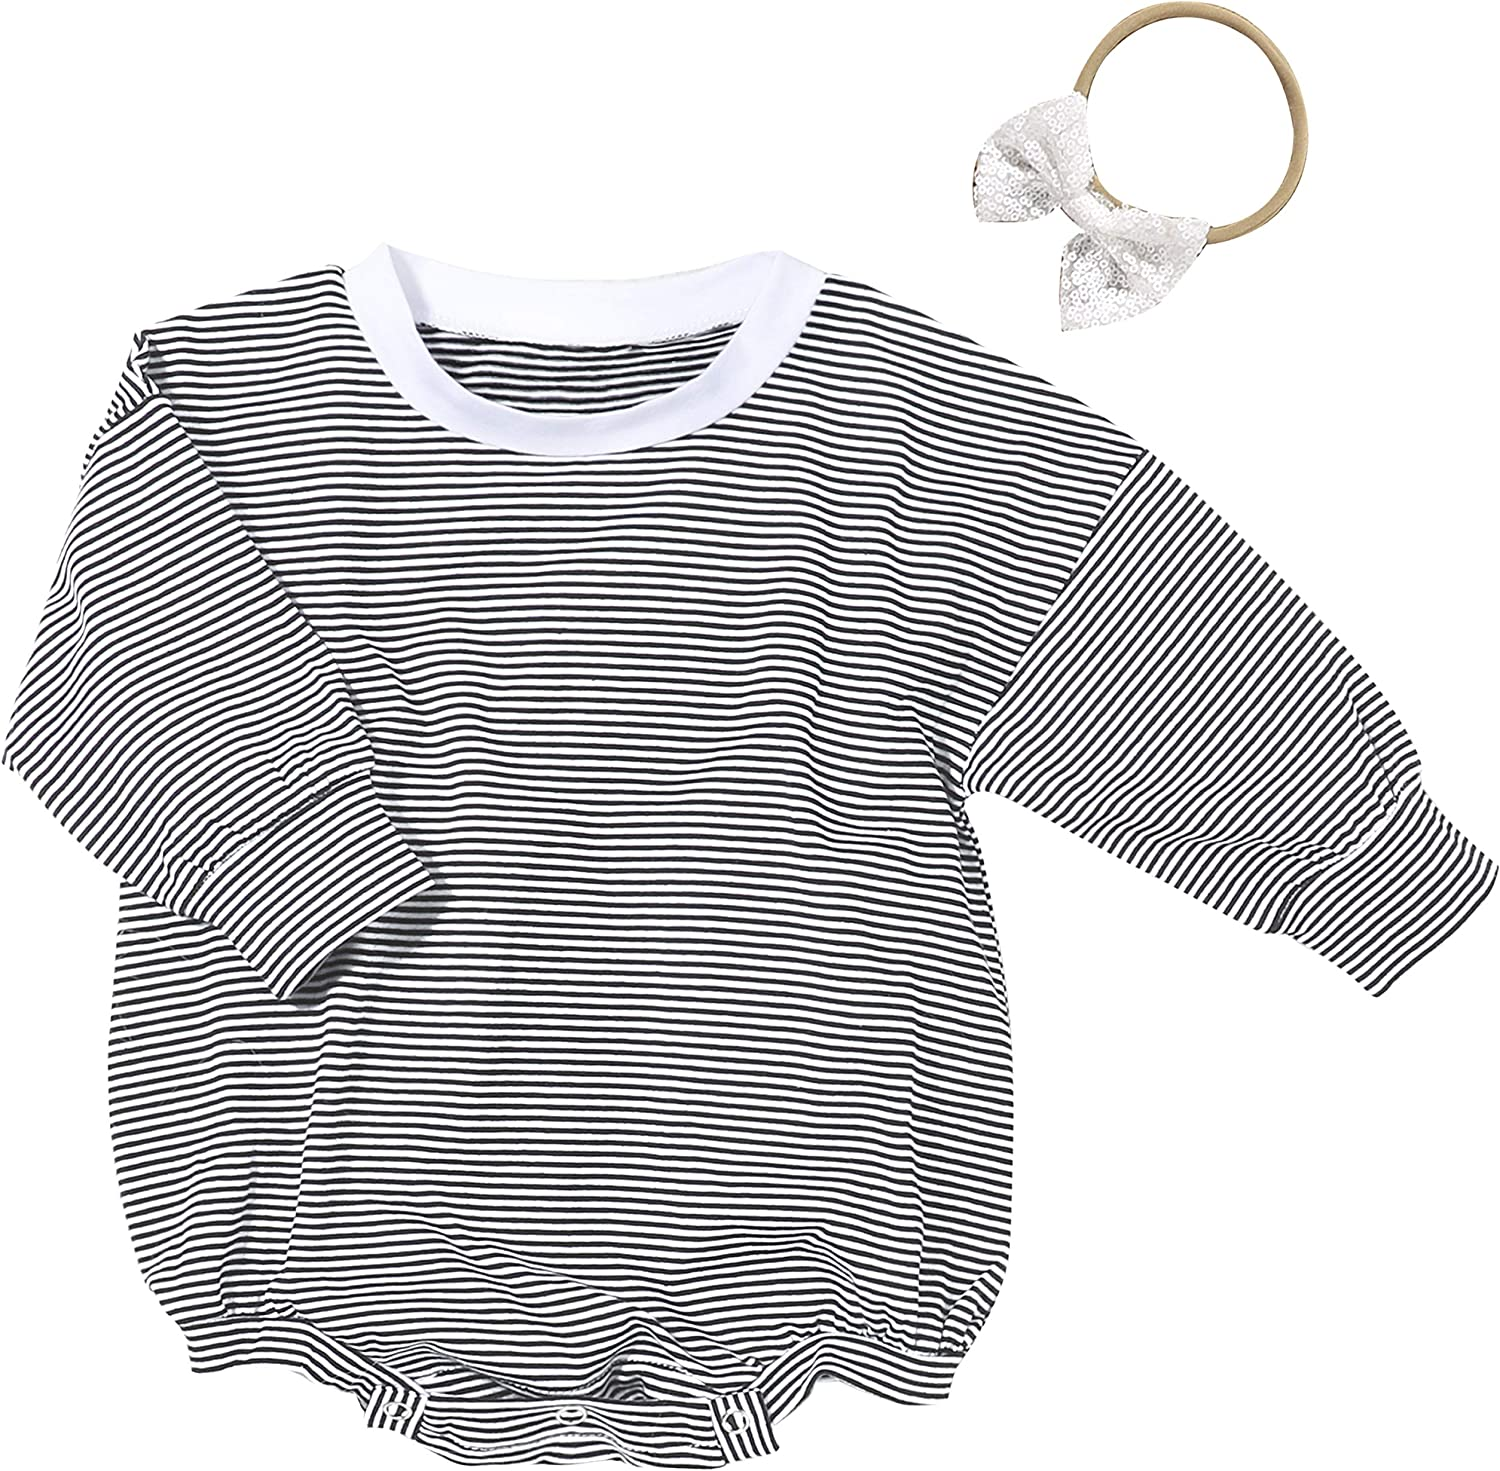 Toddlers Baby Girls Cotton Clothes Long Sleeve Romper Bodysuit Jumpsuit Outfits